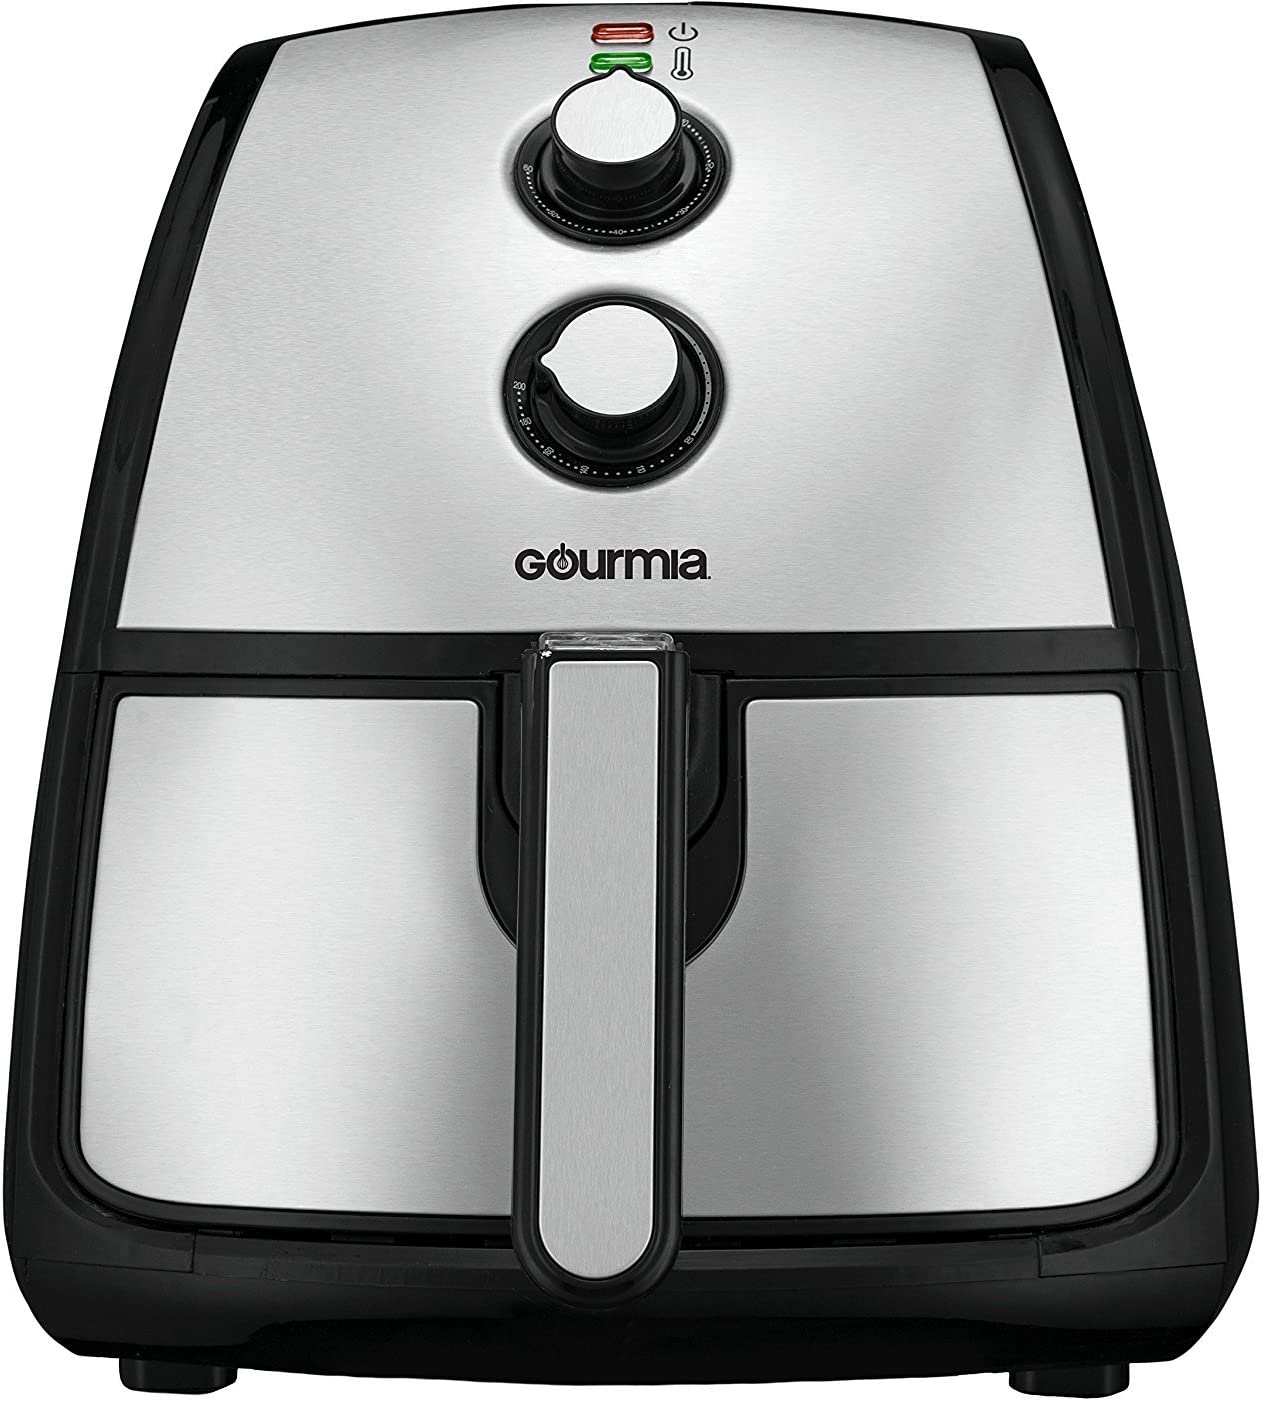 Gourmia GAF560 5 Quart Air Fryer – Oil Free Healthy Cooking – Adjustable Time and Temperature Dials – Removable Dishwasher-Safe Crisper Tray – Free Recipe Book Included